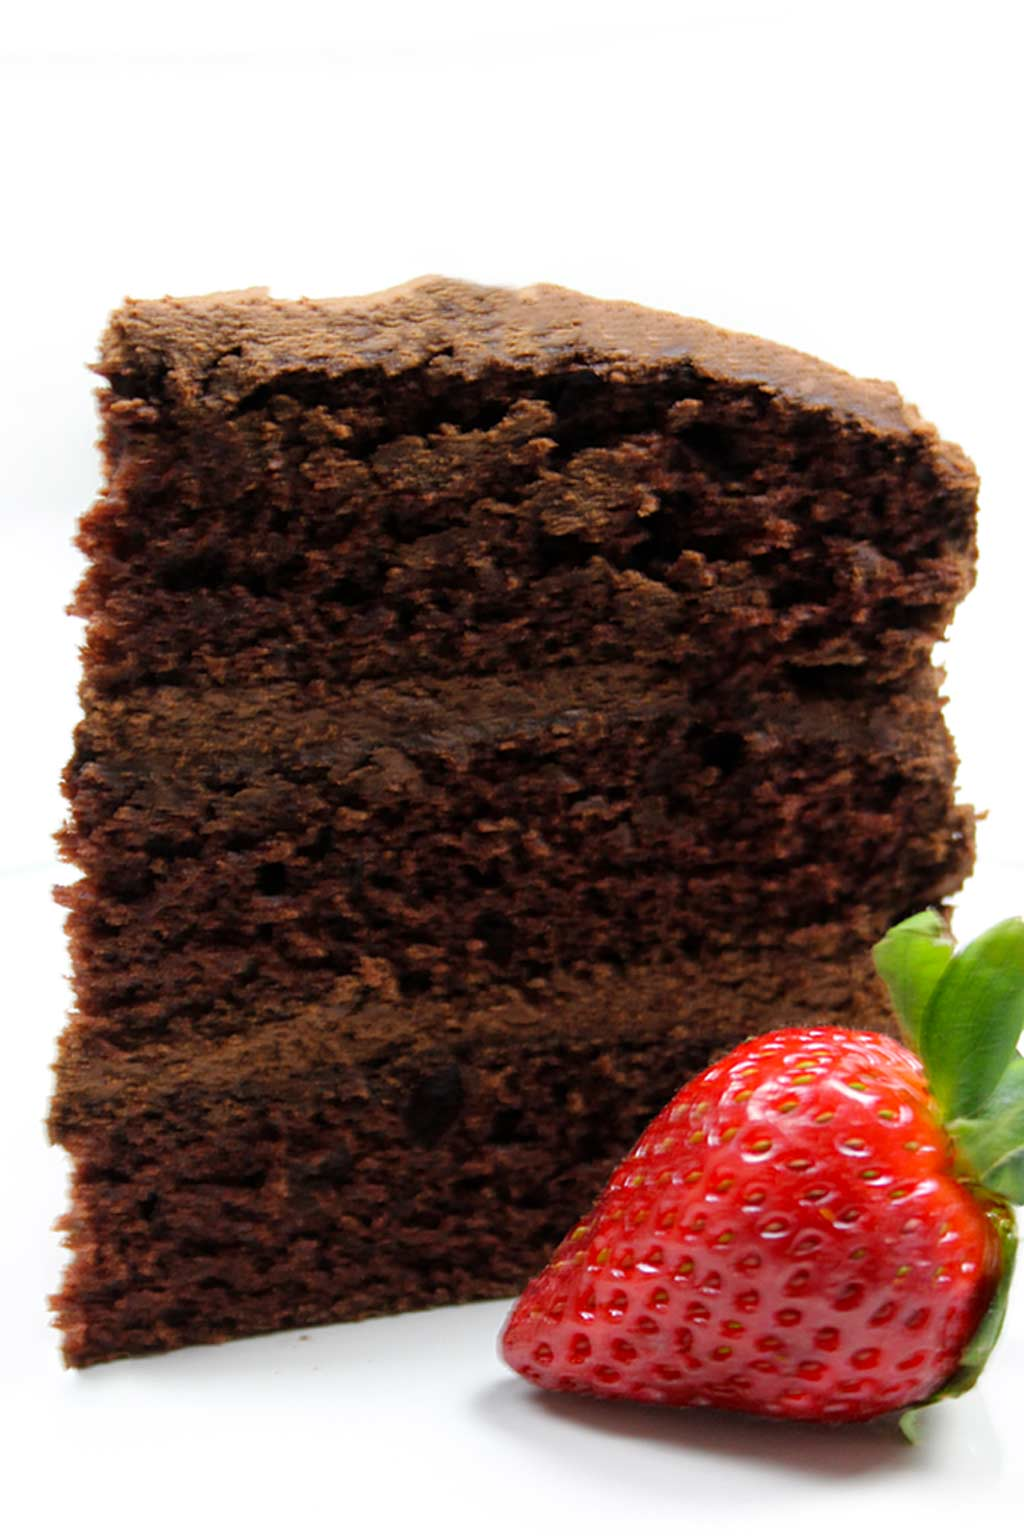 a slice of chocolate cake with a strawberry beside it